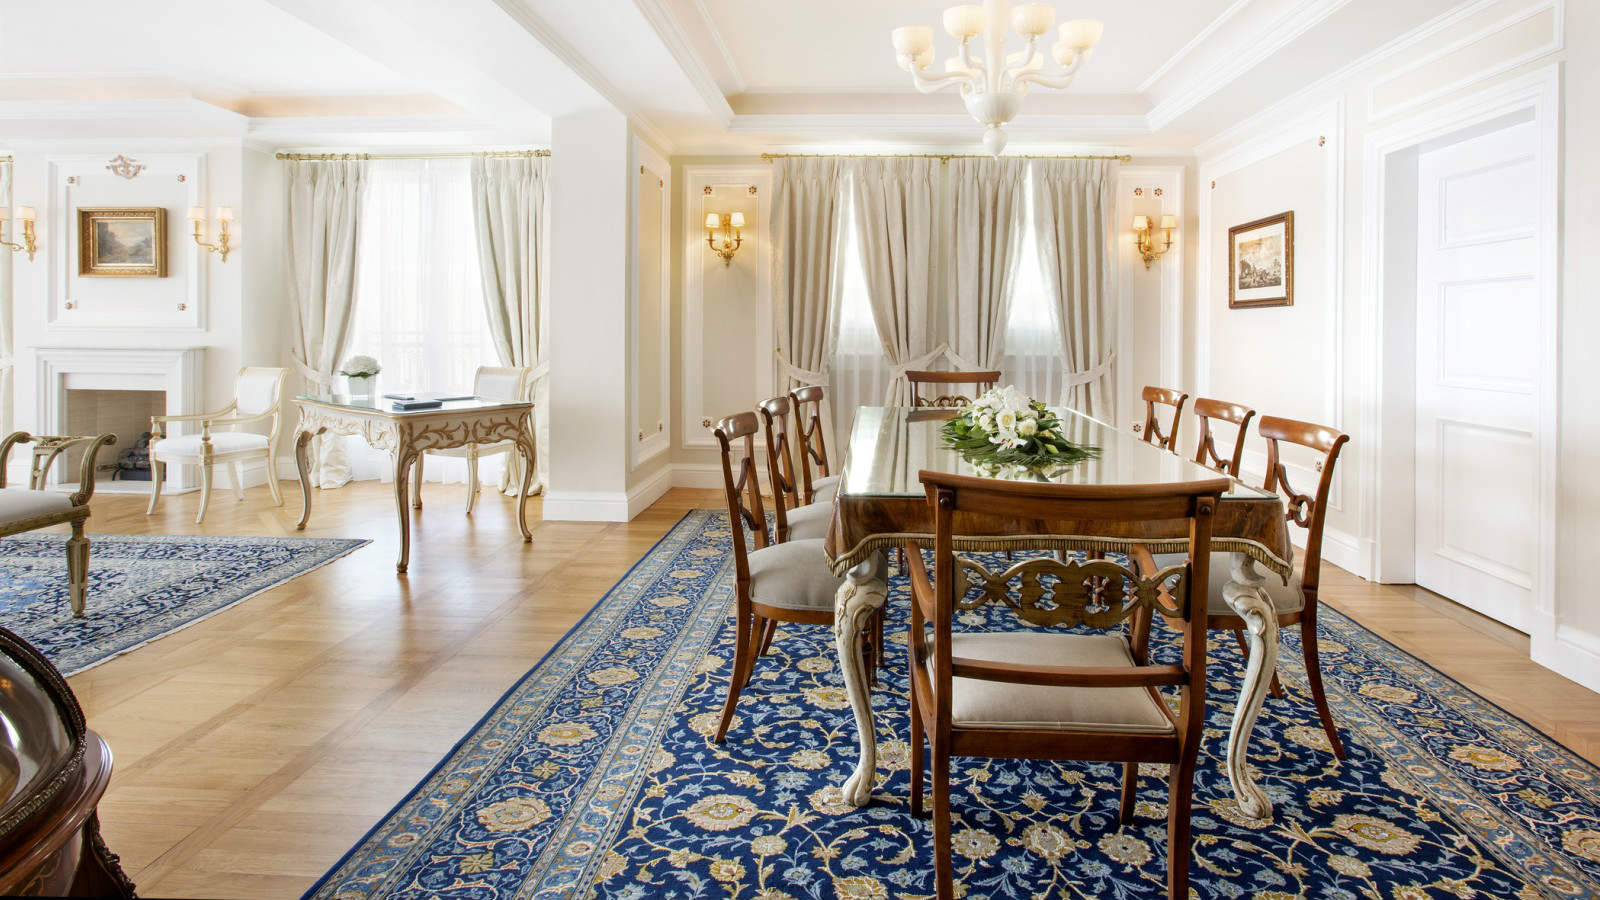 In-room dining possibilities in guest rooms and suites of the King George Athens hotel